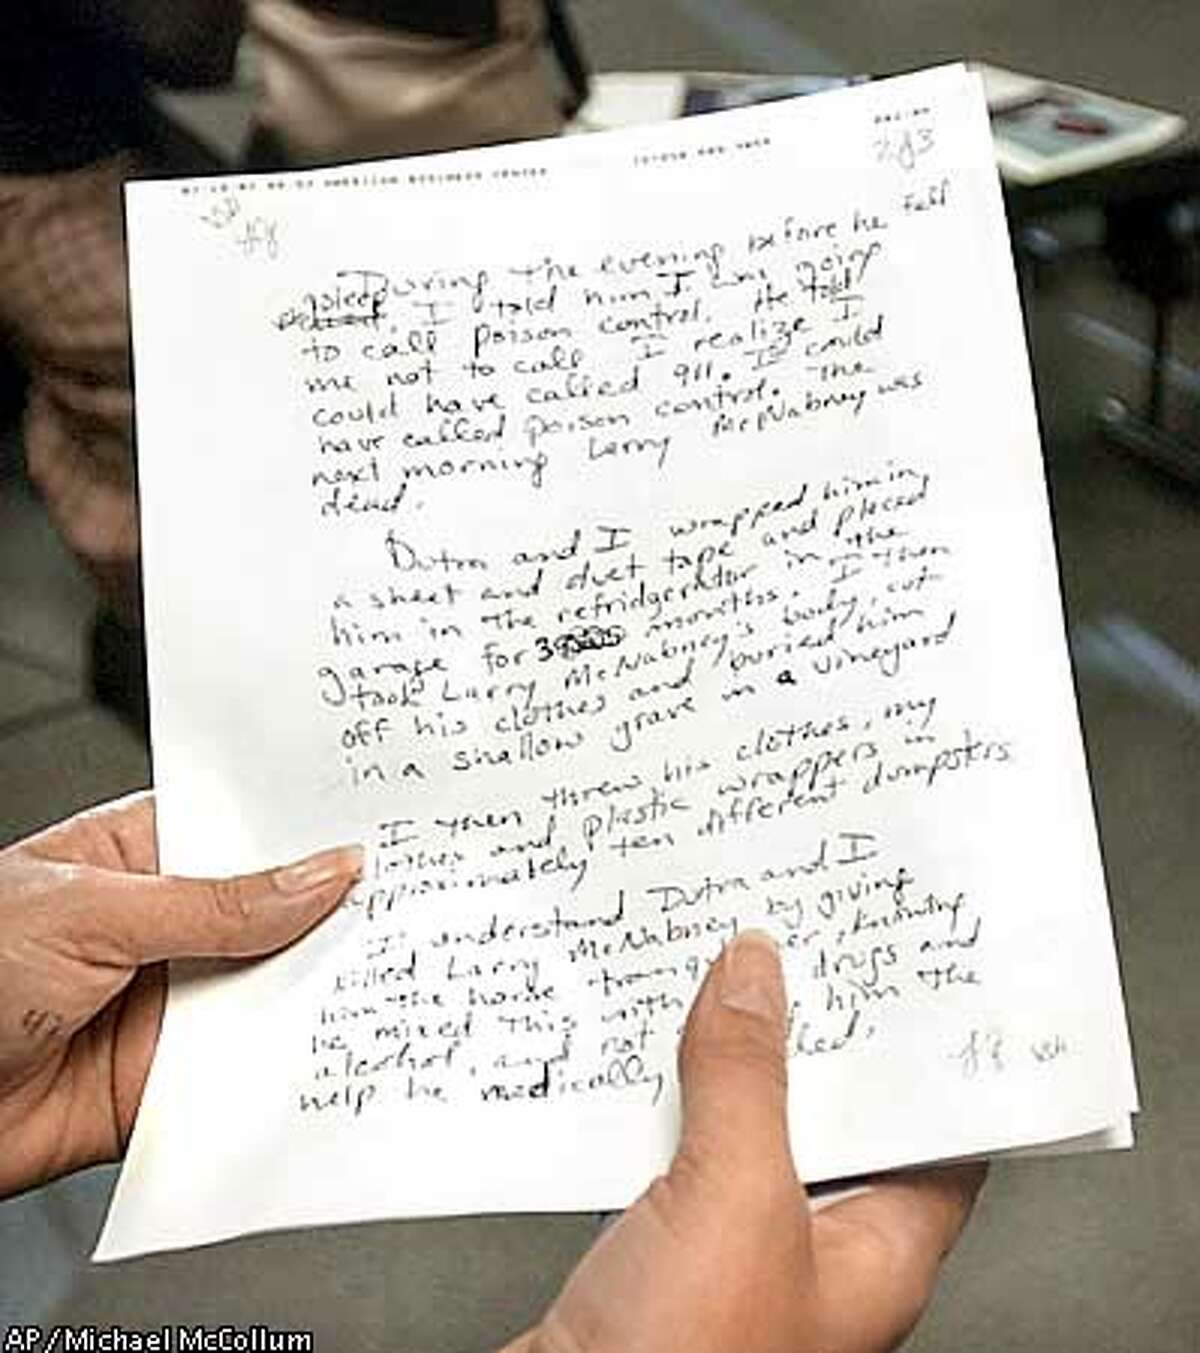 San Joaquin County Sheriff Baxter Dunn reads a statement written by Laren Renee Sims during a press conference at the San Joaquin County Jail Tuesday, March 19, 2002, in Stockton, Calif. The statement was faxed from Destin, Fla., where Sims was arrested Monday in the murder of her husband Sacramento attorney Larry McNabney, who police say was overdosed with horse tranquilizers and buried in a California vineyard. (AP Photo/The Record, Michael McCollum)